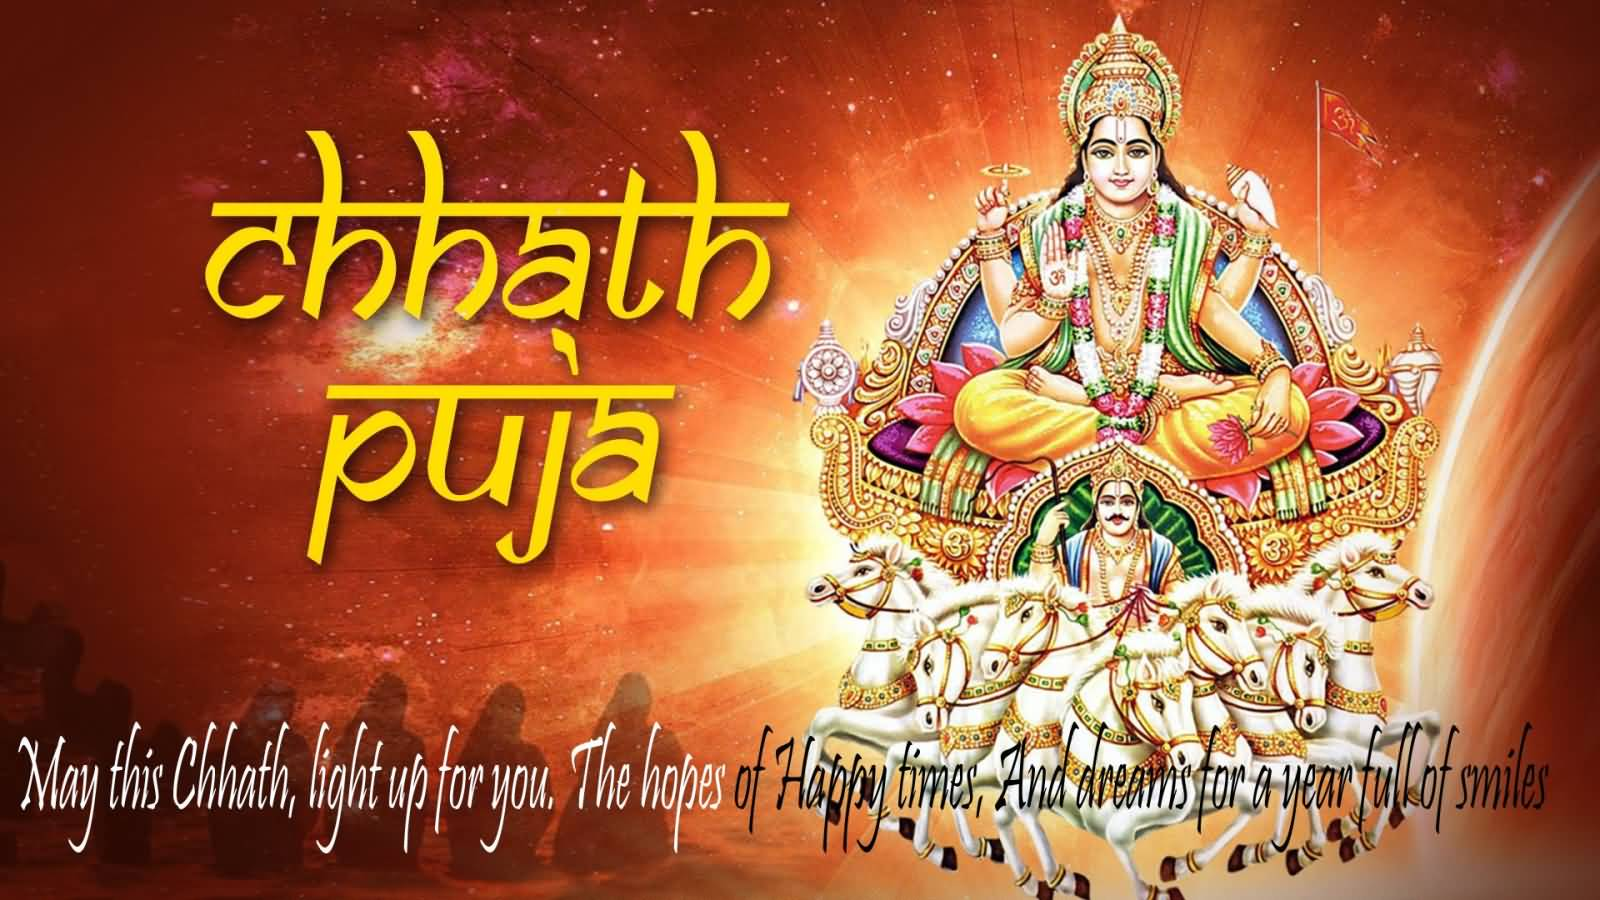 Hevisi Pooja Mp3 MP3 Download - aiohoworg